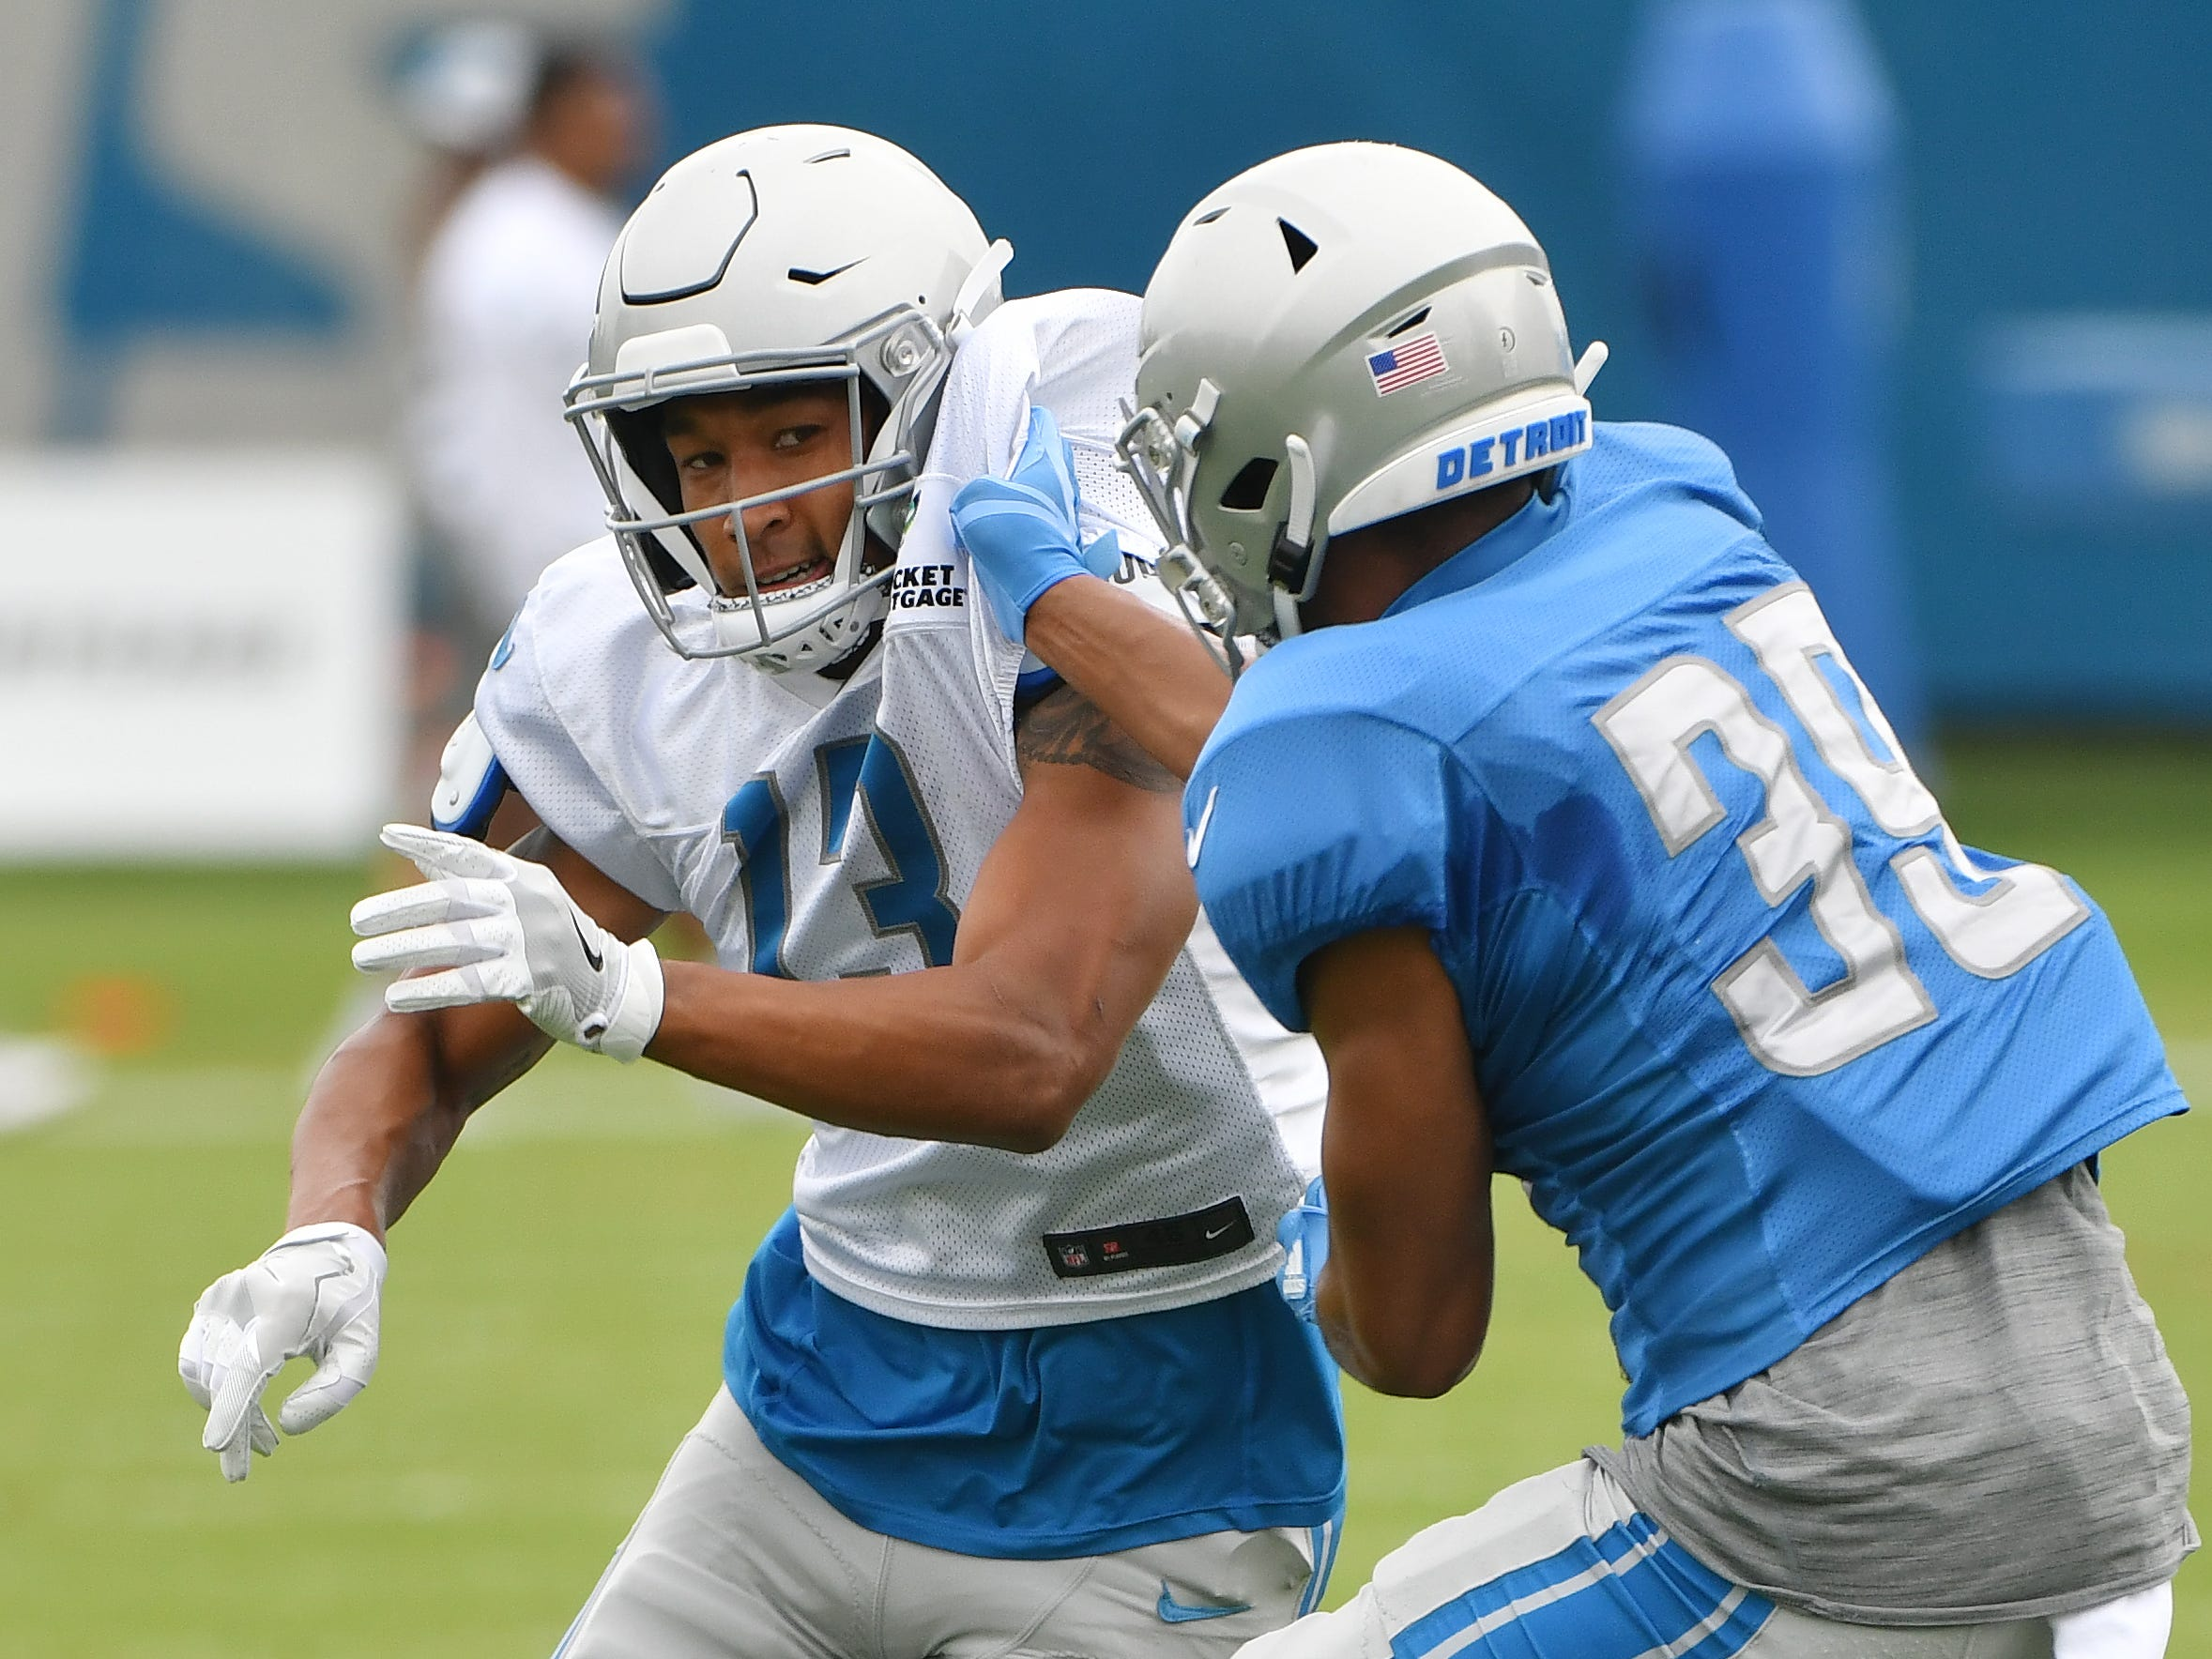 Lions wide receiver T.J. Jones and corner back Jamal Agnew work during a drill involving bursting off the line of scrimmage against a defender.